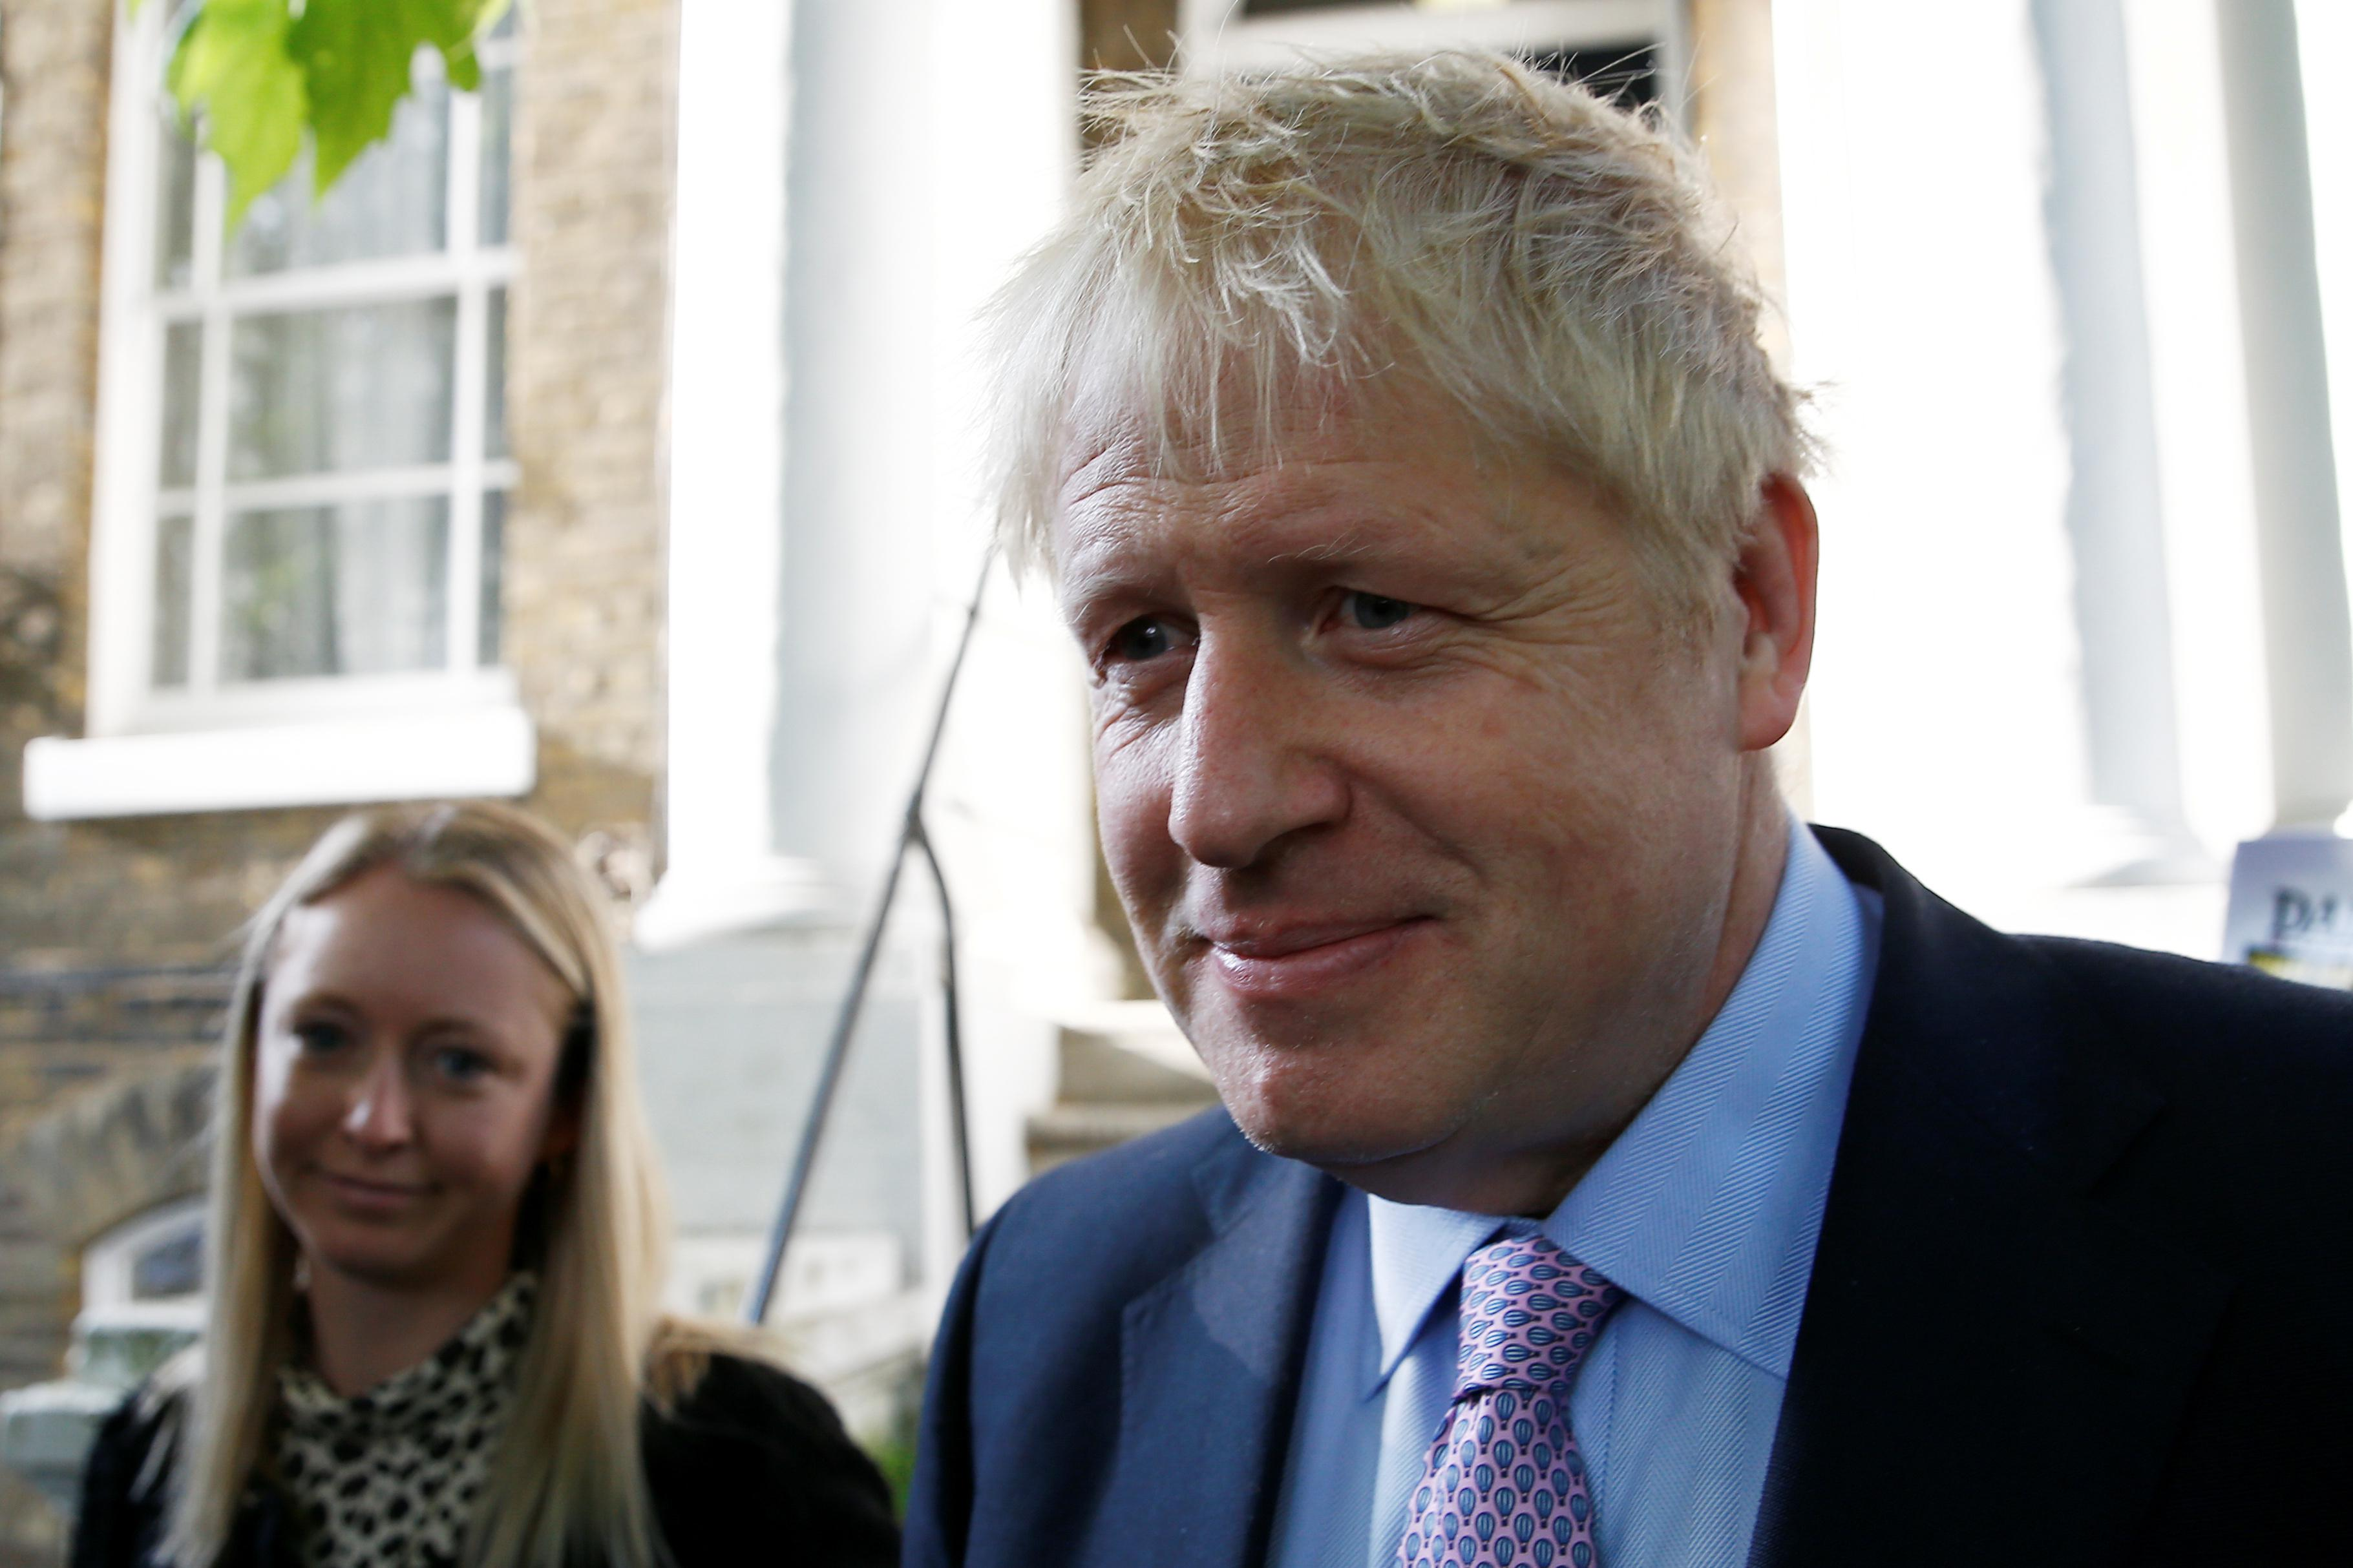 Johnson gets new boost in race to become prime minister